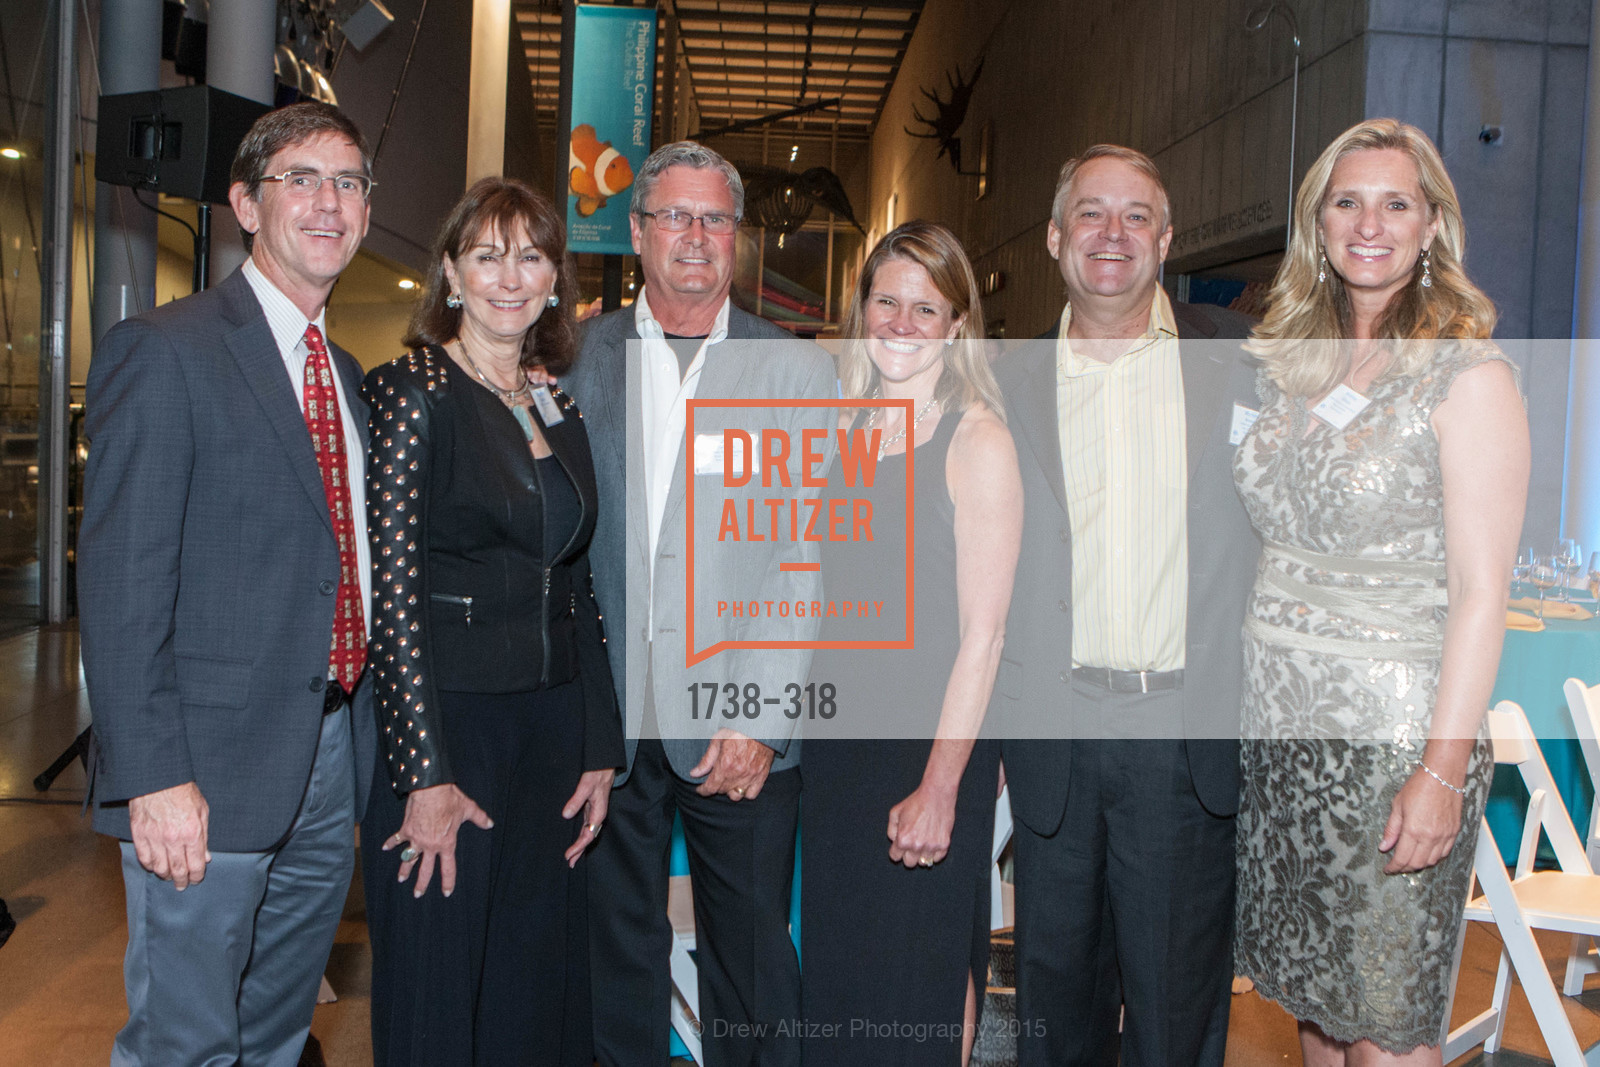 Dan Dunn, Elizabeth Wagner, Jim Tolonen, Elizabeth Ulmer, Michael Bennett, Kristine Billeter, Coral Reef Alliance at the California Academy of Sciences, Academy of Sciences, September 26th, 2015,Drew Altizer, Drew Altizer Photography, full-service agency, private events, San Francisco photographer, photographer california